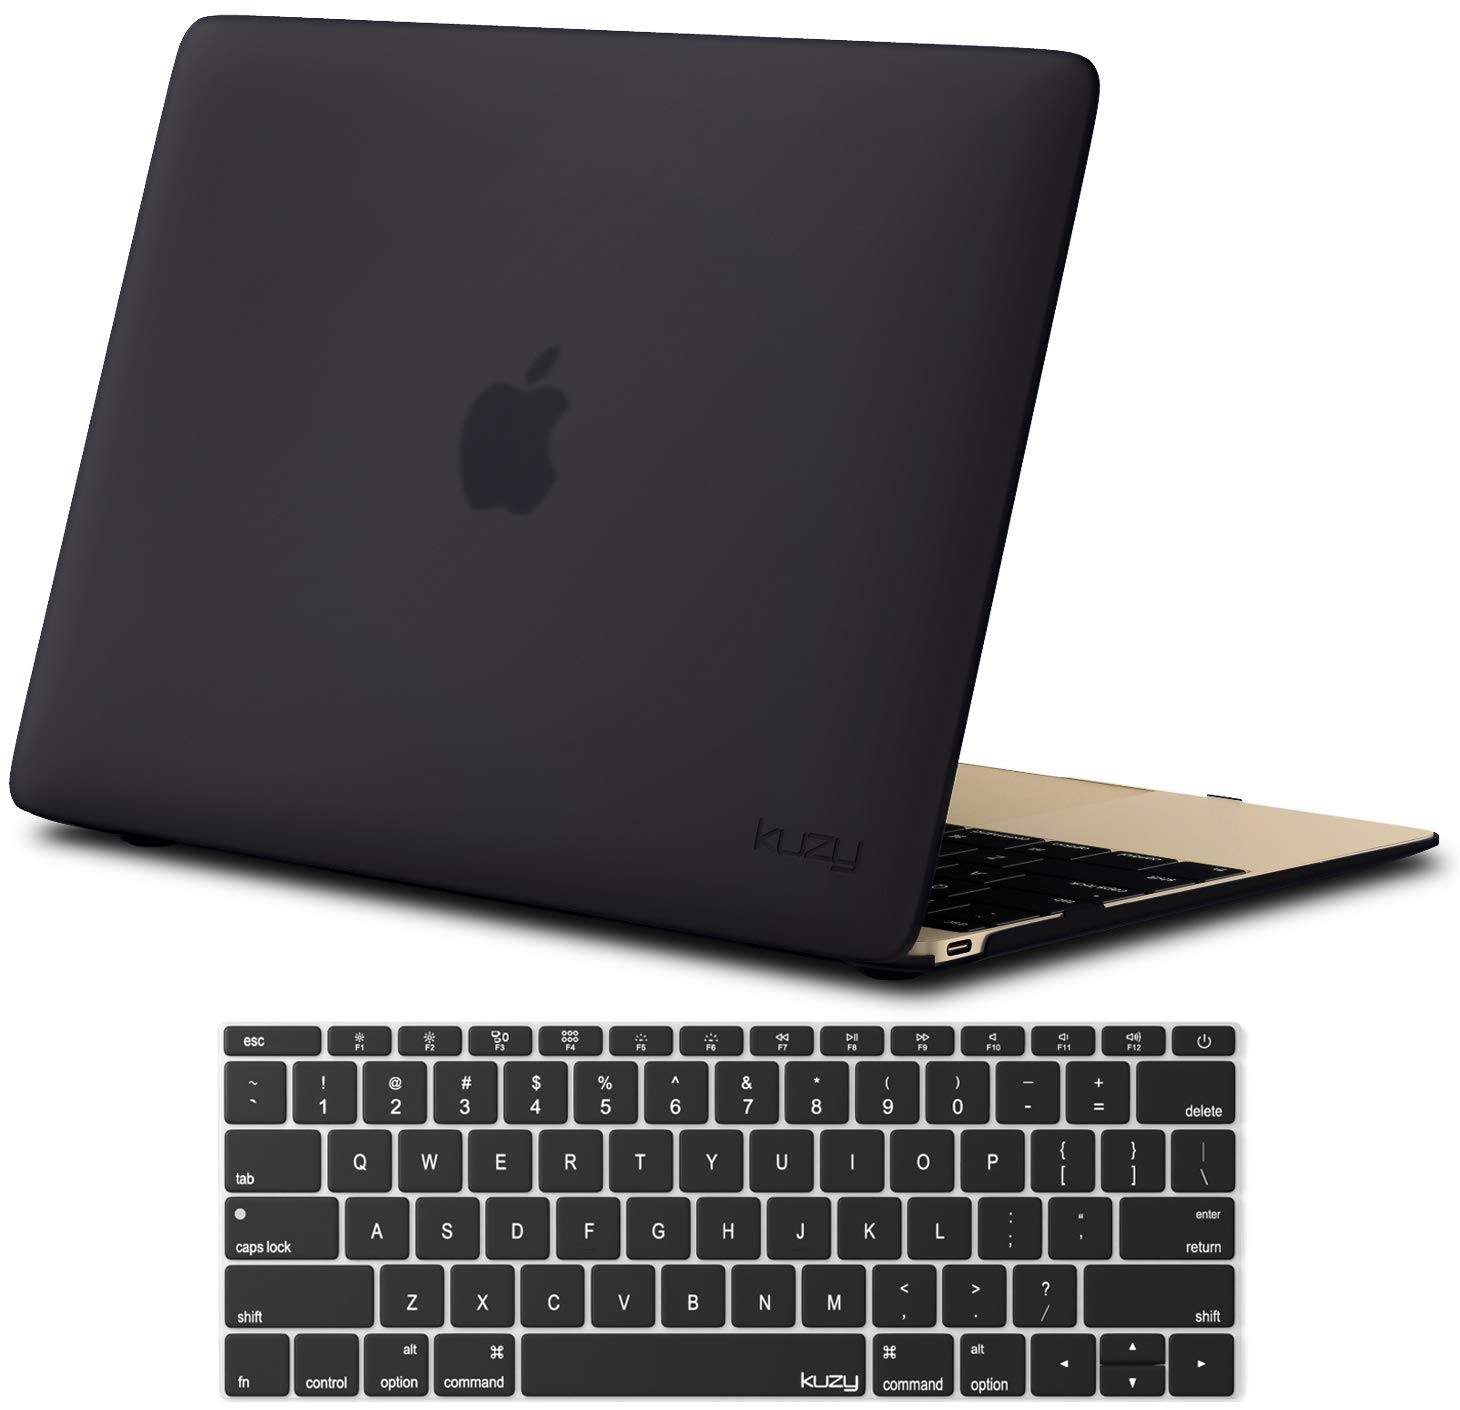 Kuzy - MacBook 12 inch Case and Keyboard Cover for Model A1534 with Retina Display Soft Touch Hard Cover Shell - New Version - Black by Kuzy